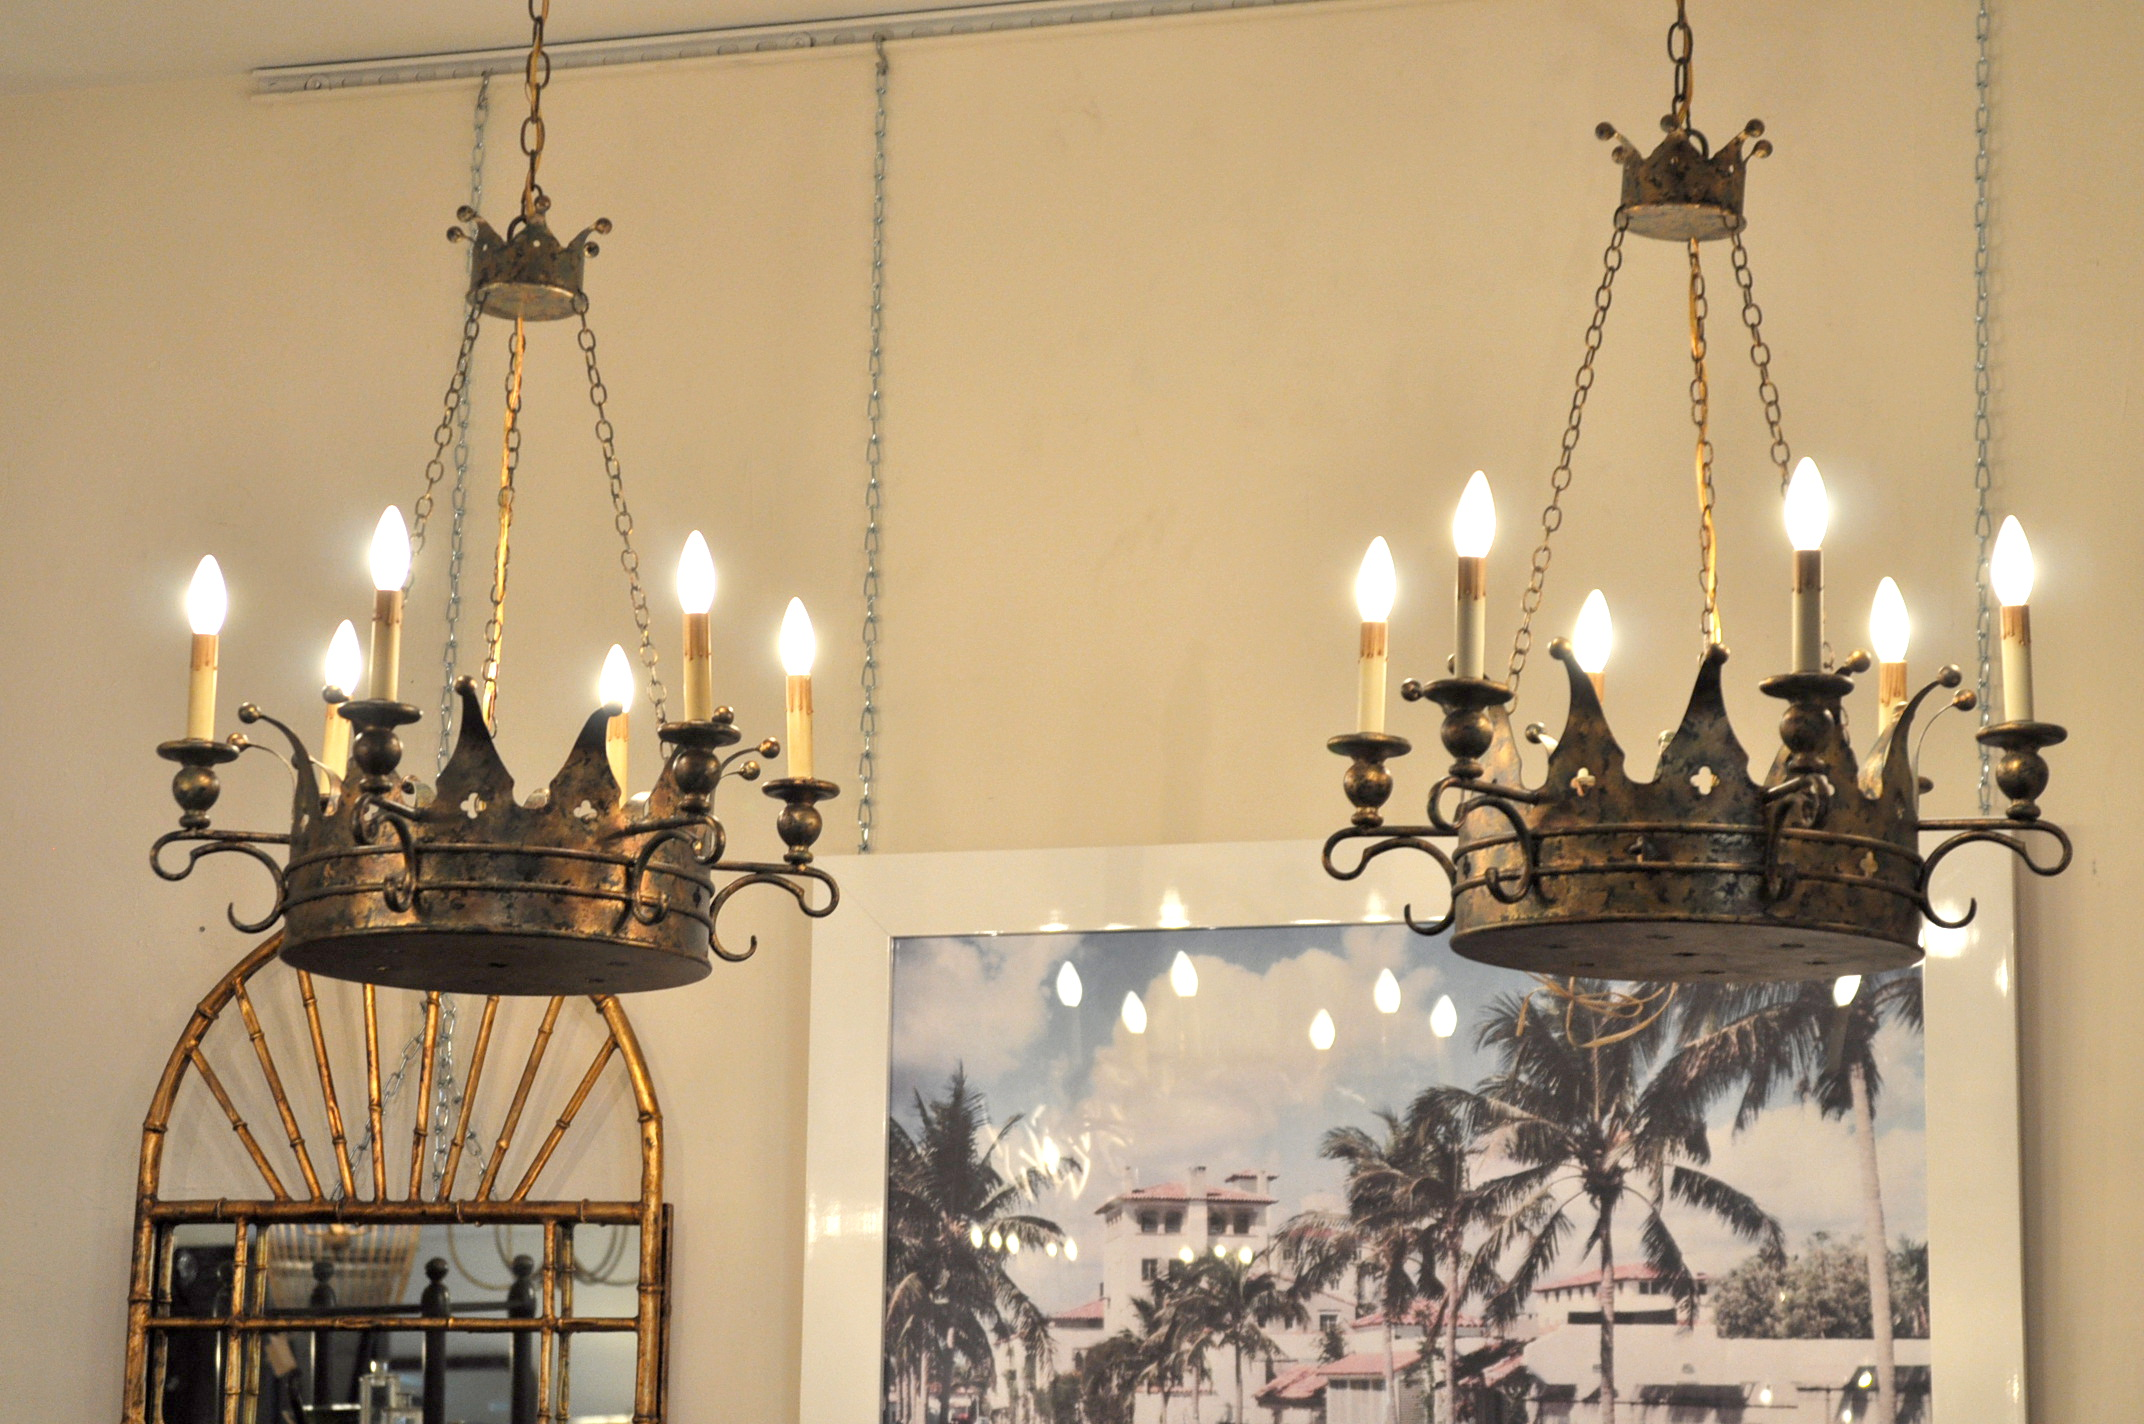 Kings crown chandelier mecox gardens kings crown chandelier aloadofball Image collections